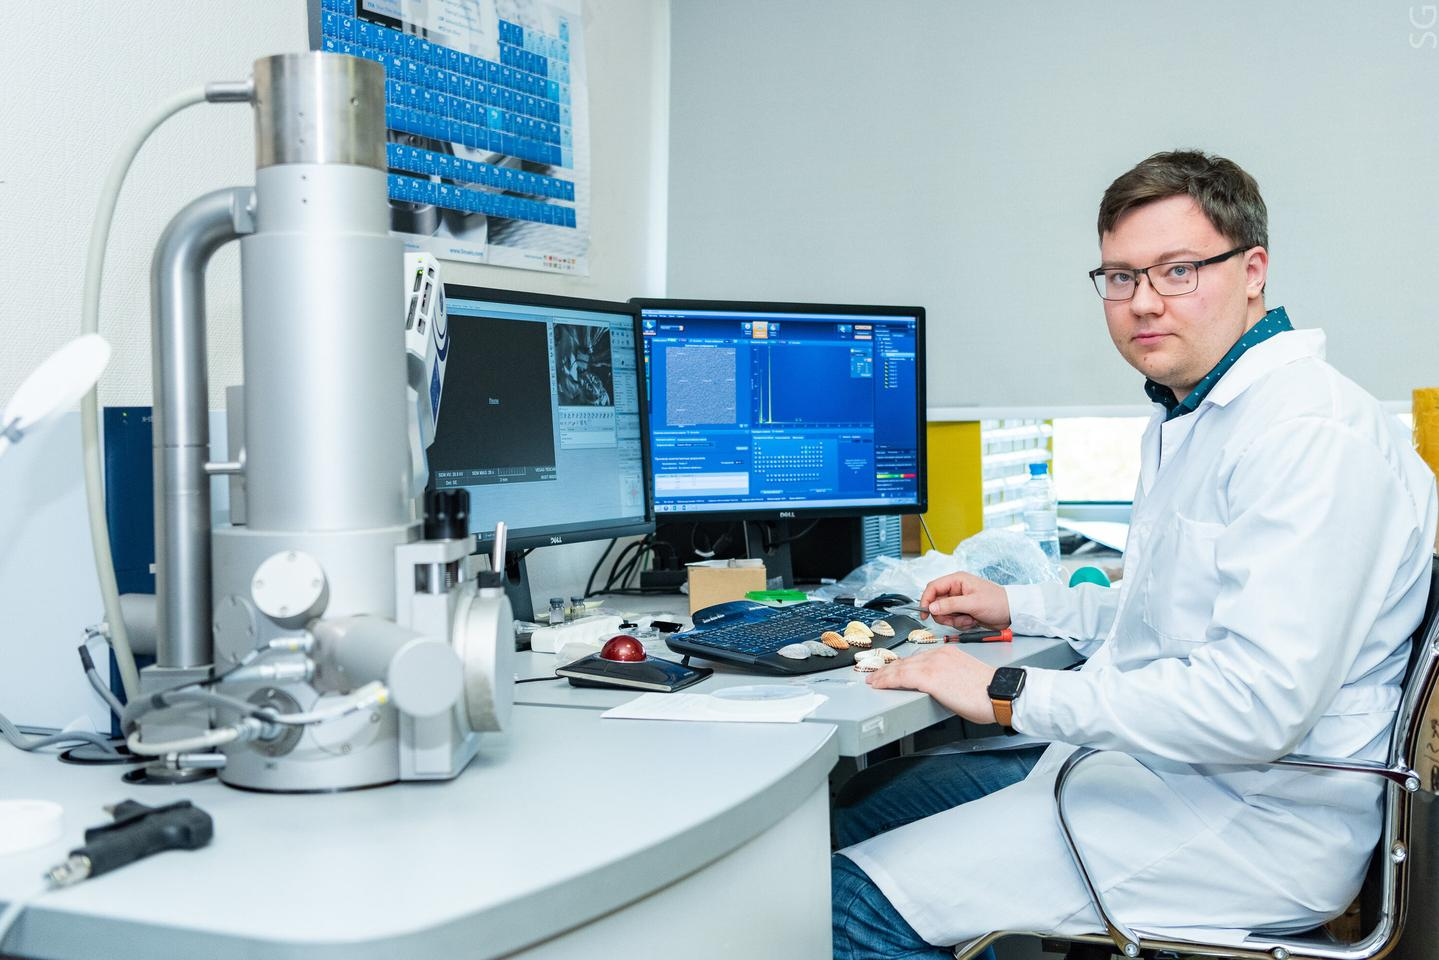 Evgeny Kolesnikov and a team of material scientists at Russia's National University of Science and Technology MISIS have developed a promising new anode material for lithium batteries